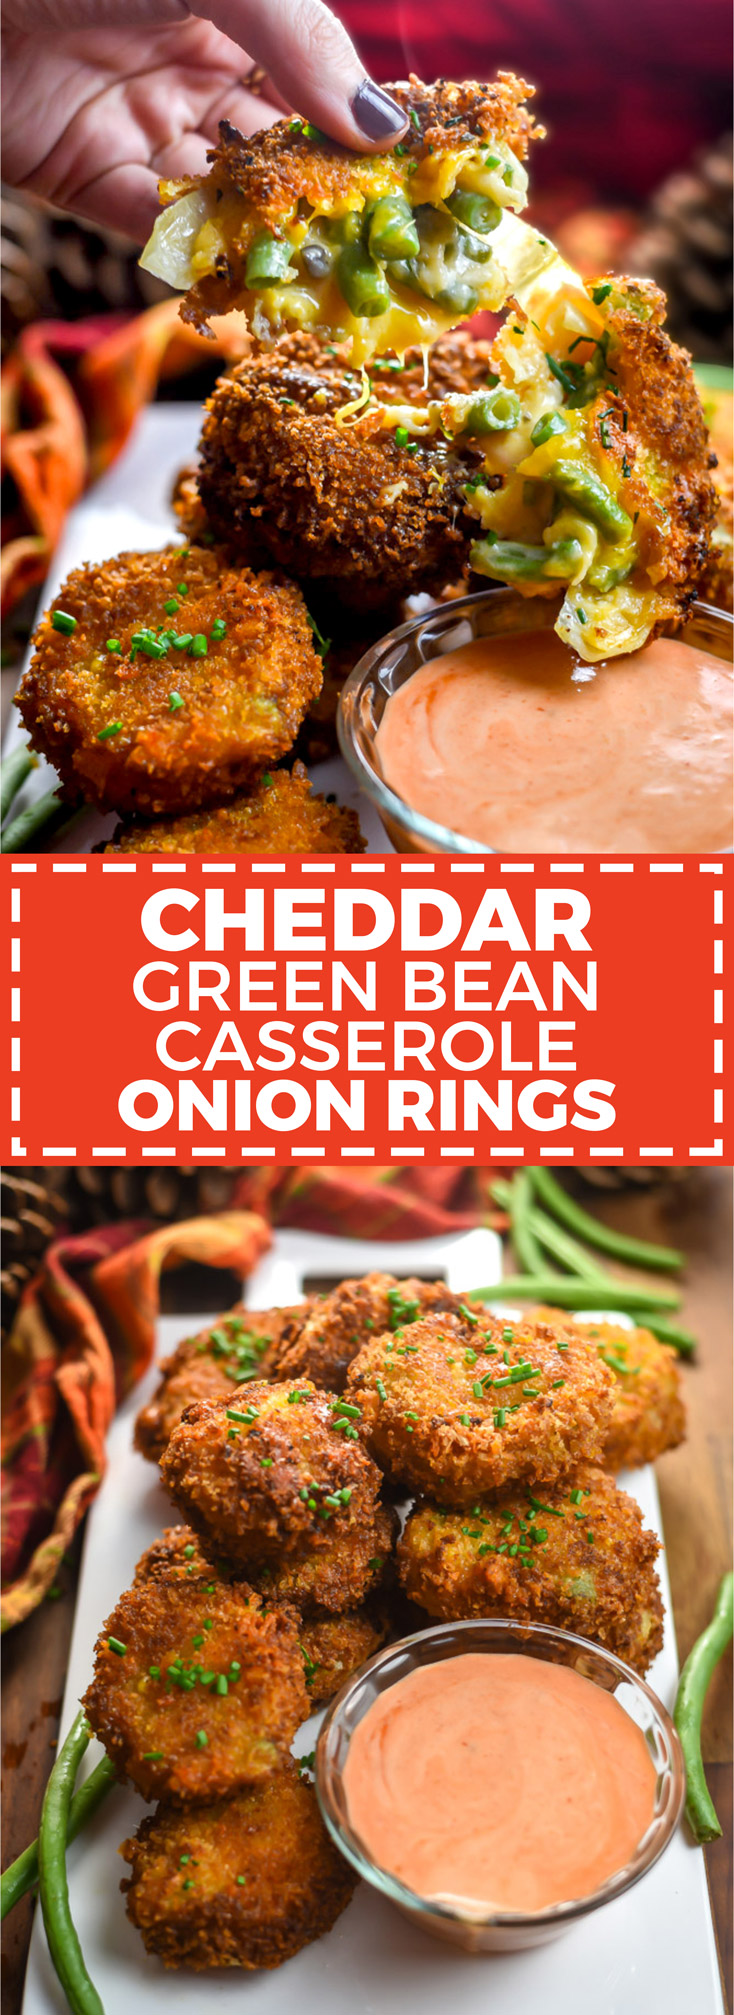 Cheddar Green Bean Onion Rings. This cheesy, crunchy spin on the traditional Thanksgiving dish is better than ever! | hostthetoast.com